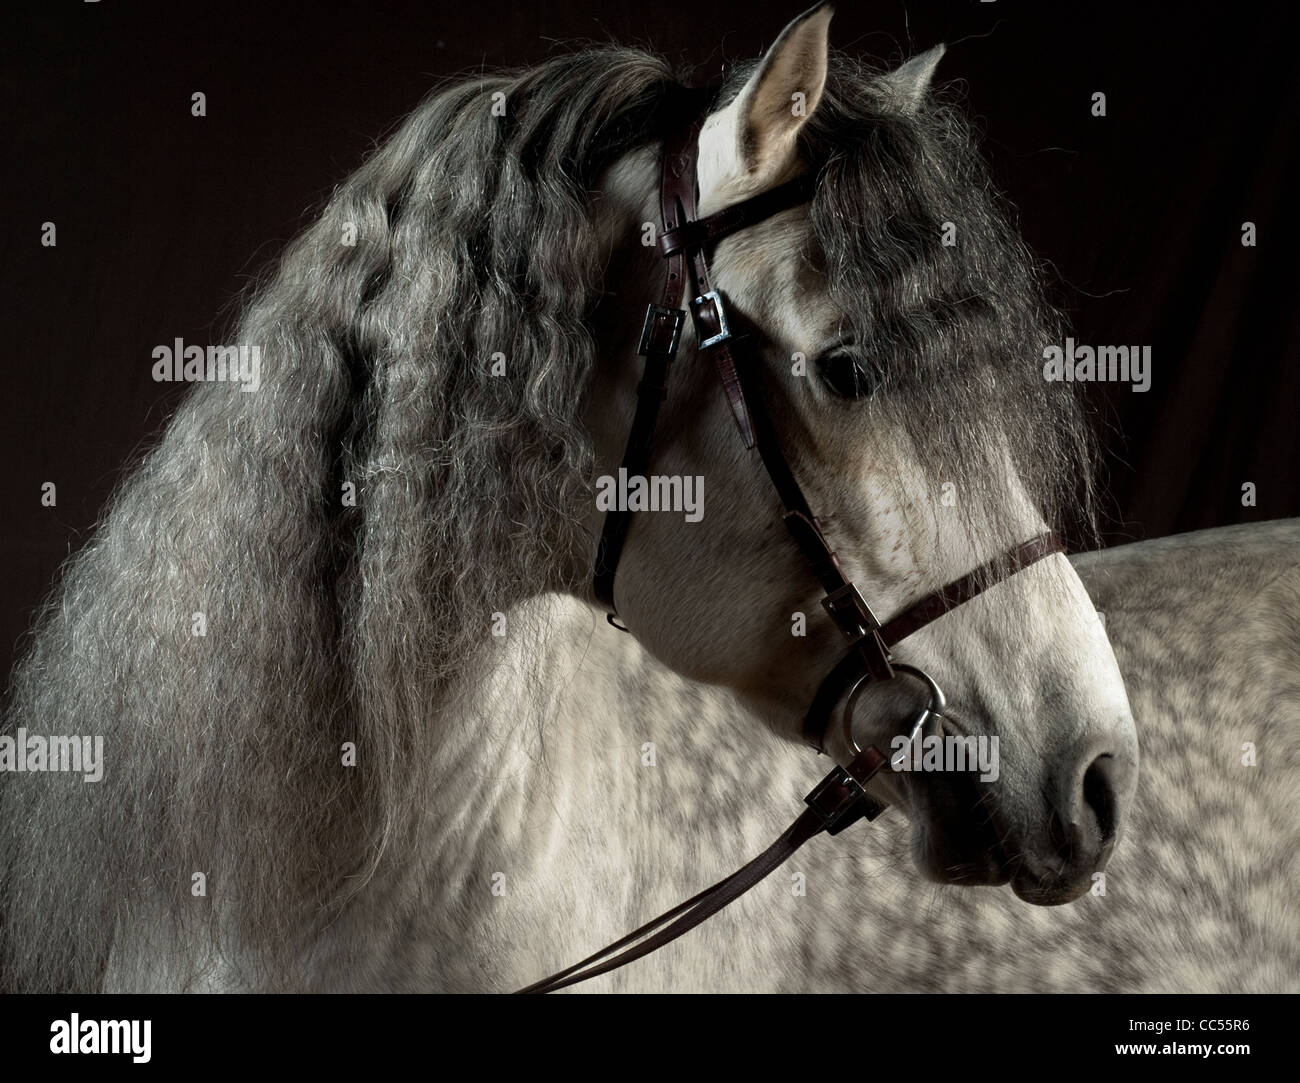 Andalusian horse, portrait, Poland - Stock Image